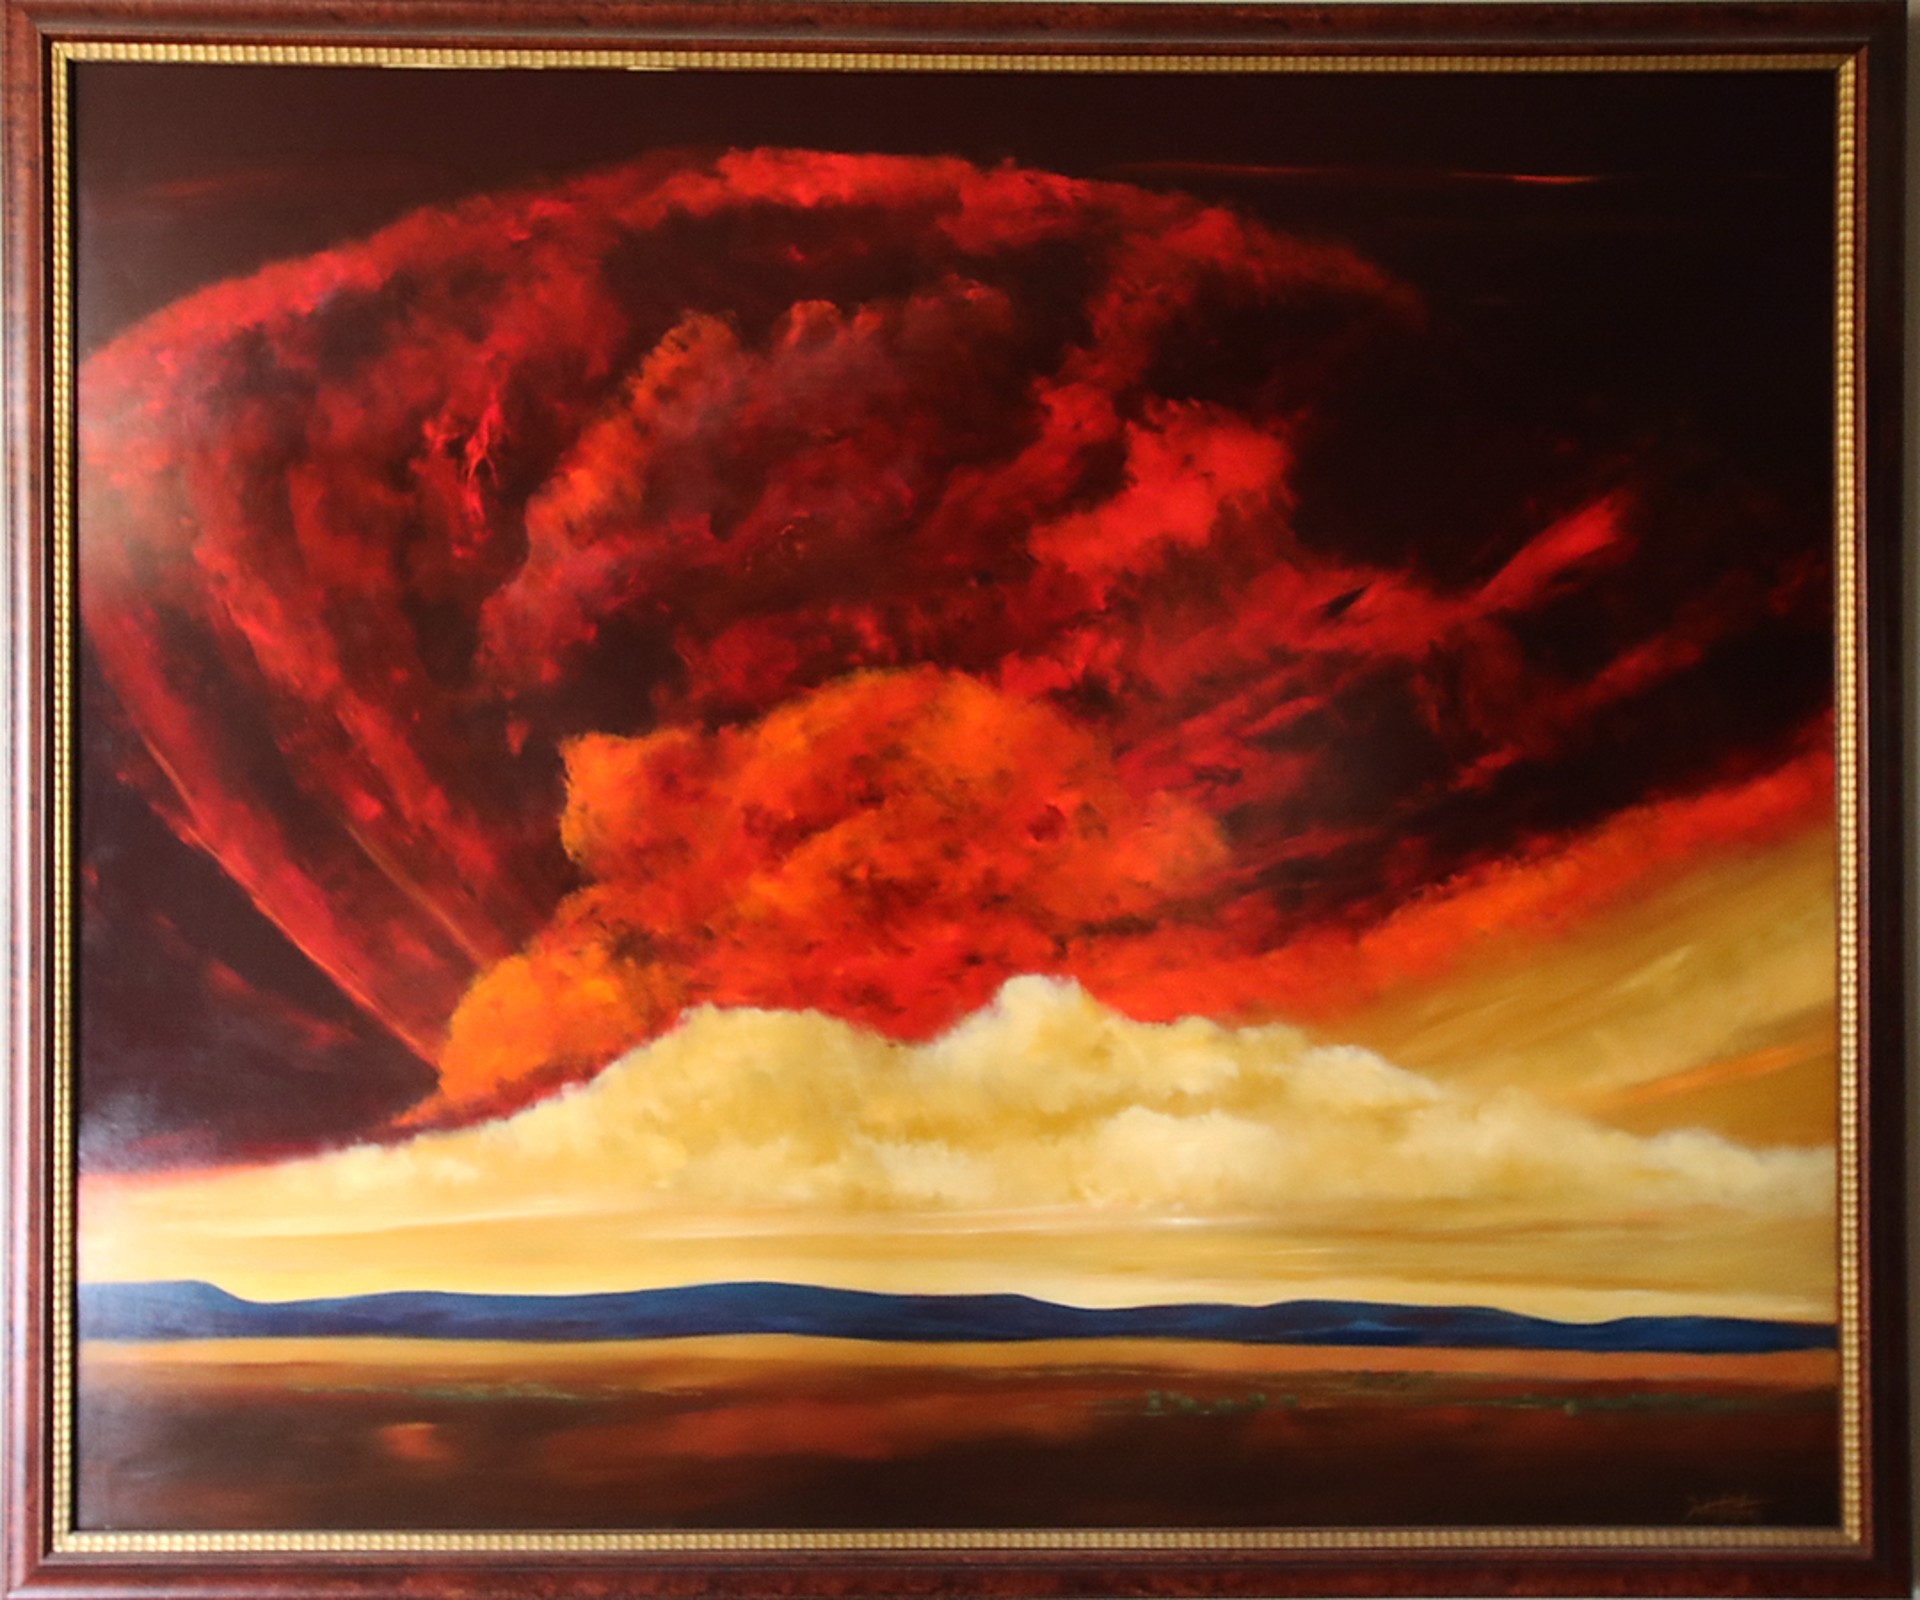 Home of the Red Heavens by Poteet Victory